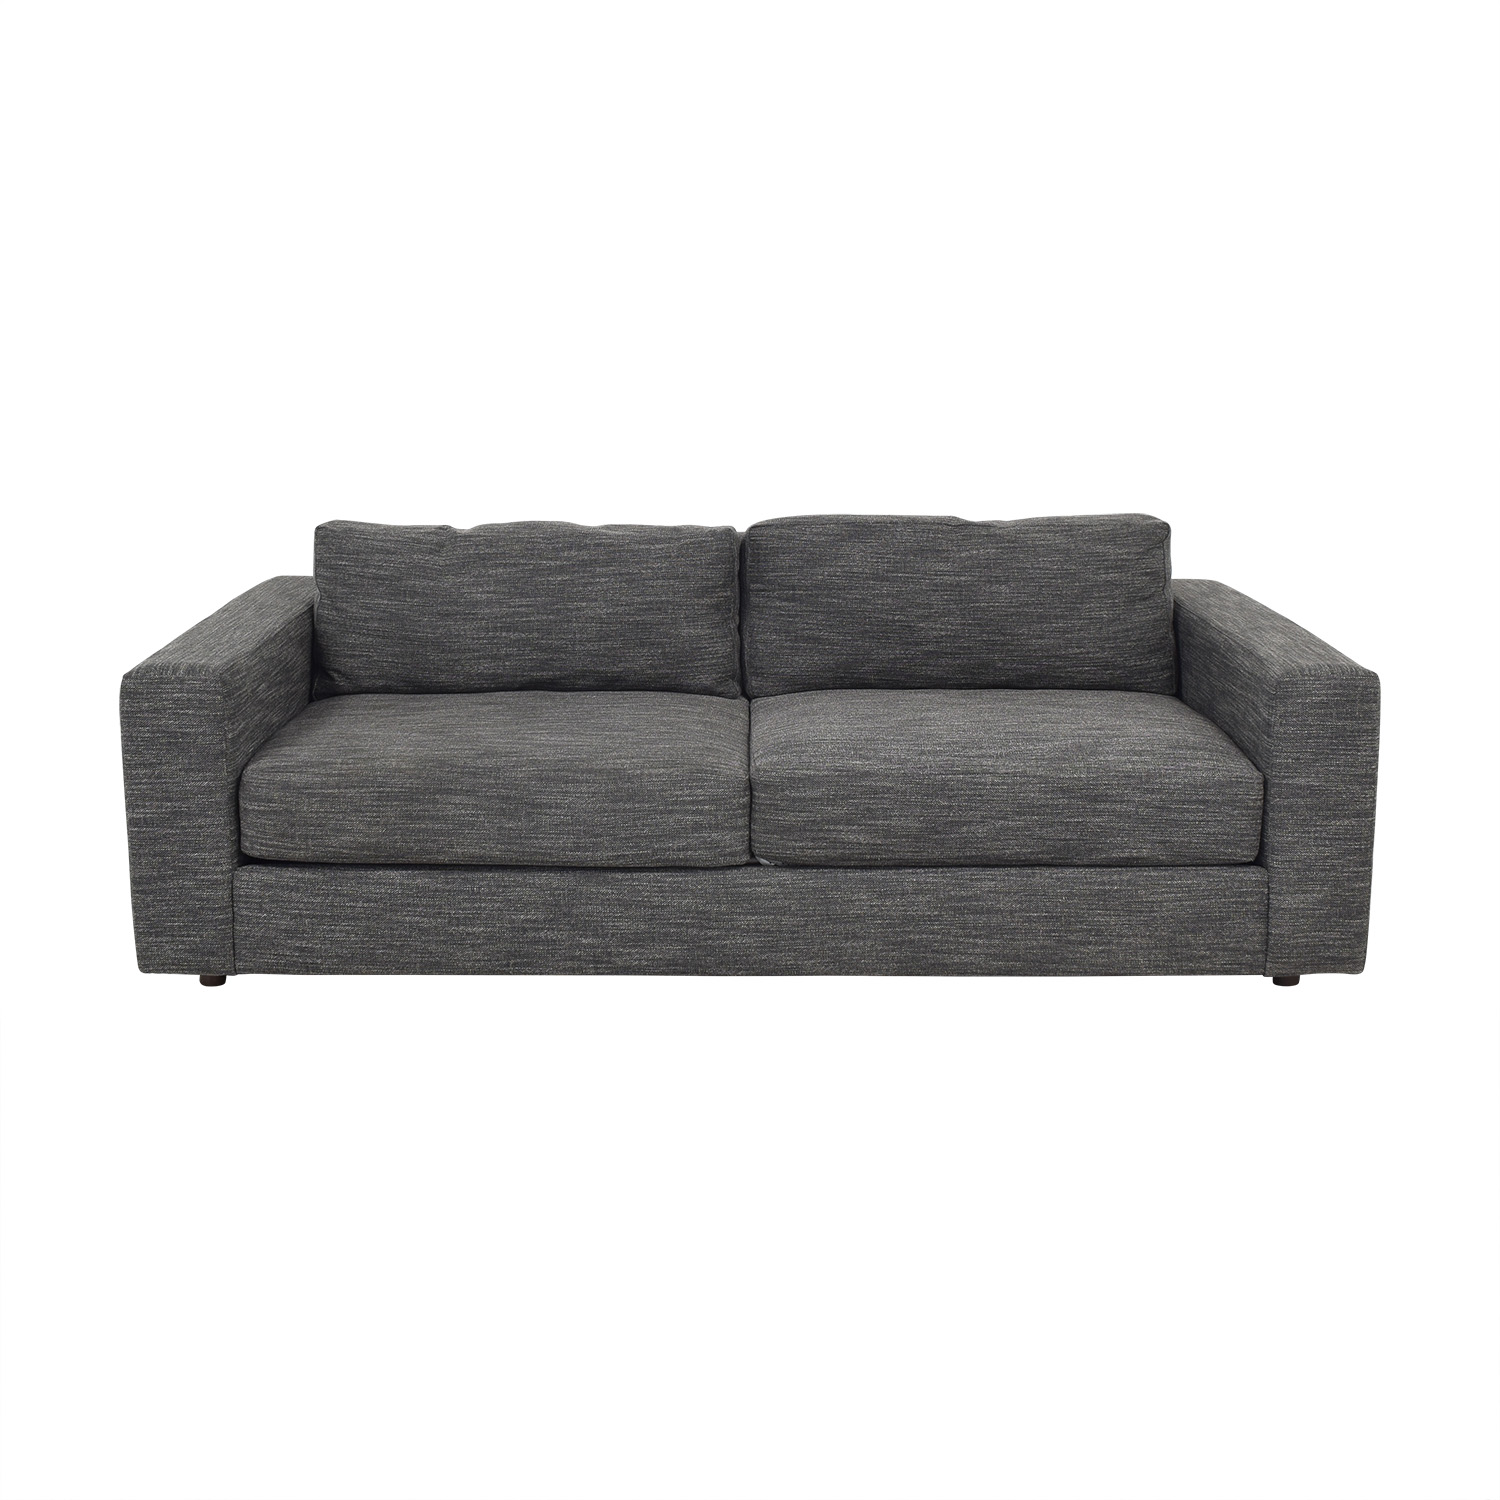 West Elm West Elm Urban Sofa dimensions